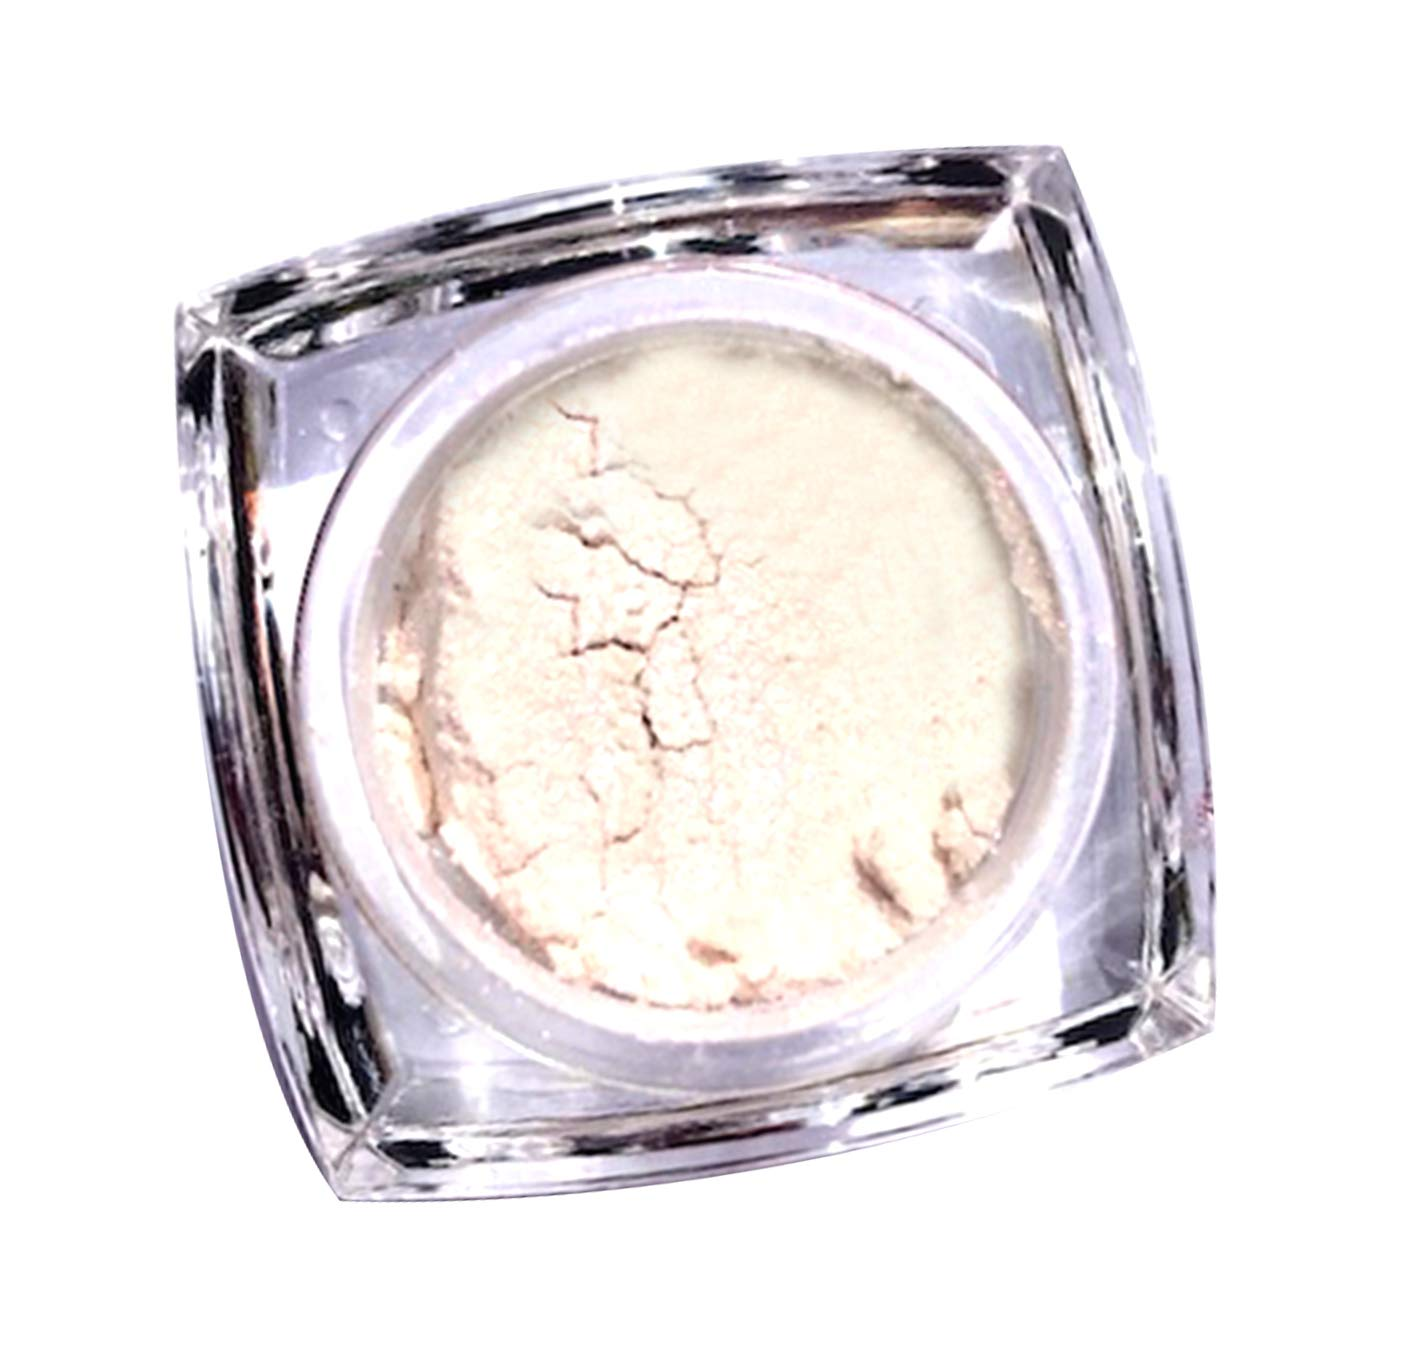 Neva Nude Milky Way White Iridescent Lilac Loose Pigment Sparkle Dust Shimmer Eyeshadow Highlighter VEGAN